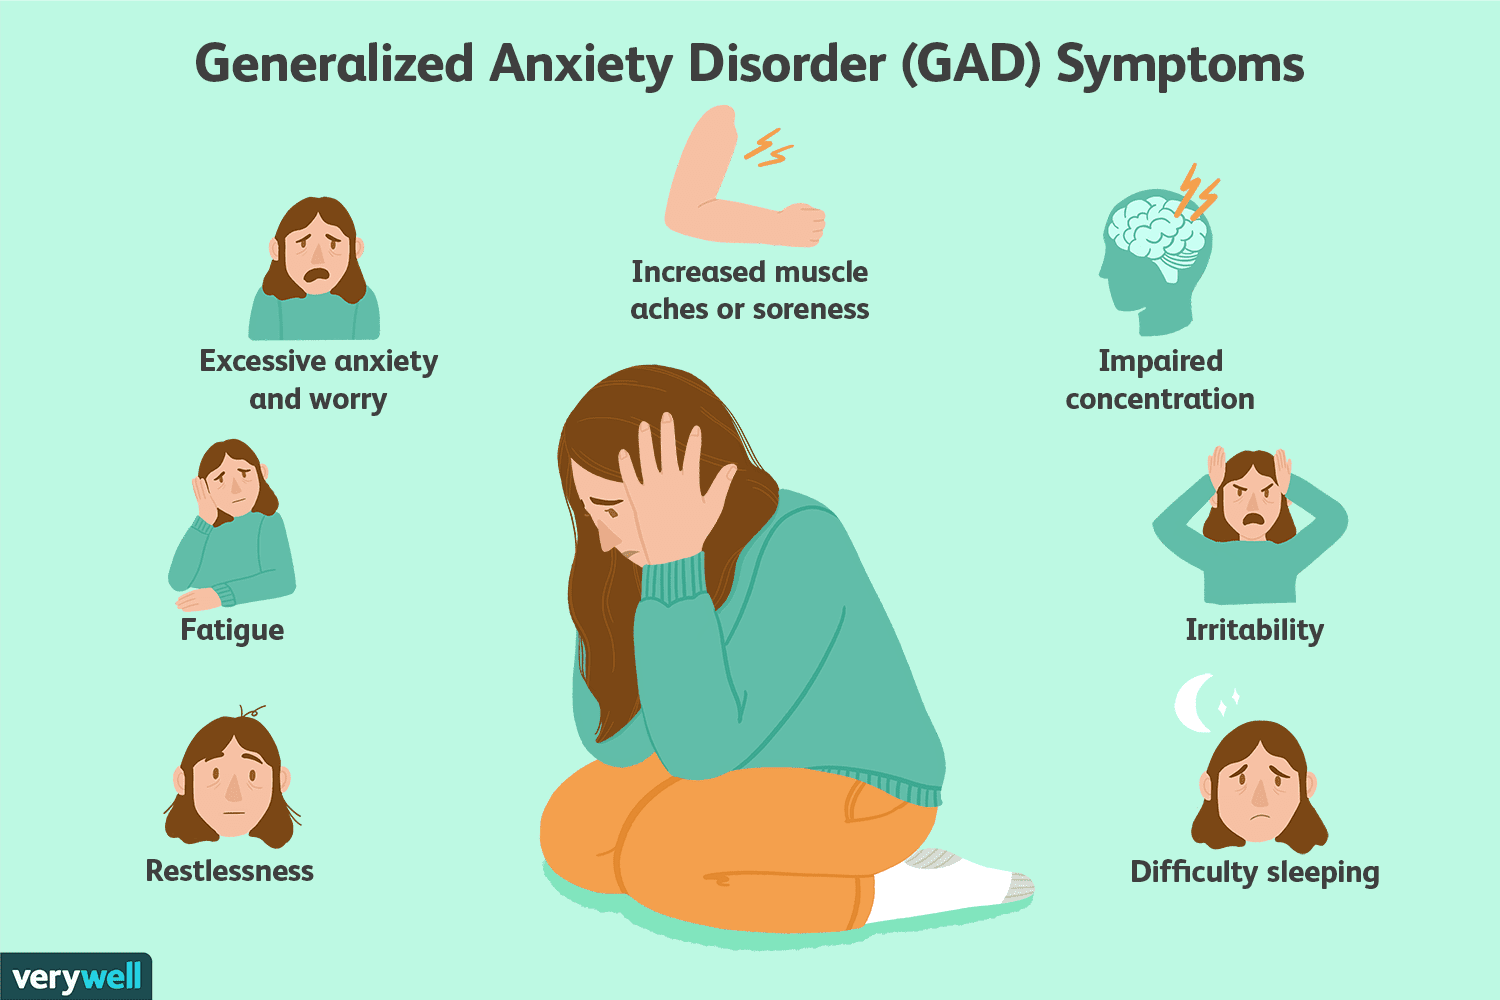 png transparent download Silent clipart anxious person. Dsm criteria for diagnosing.